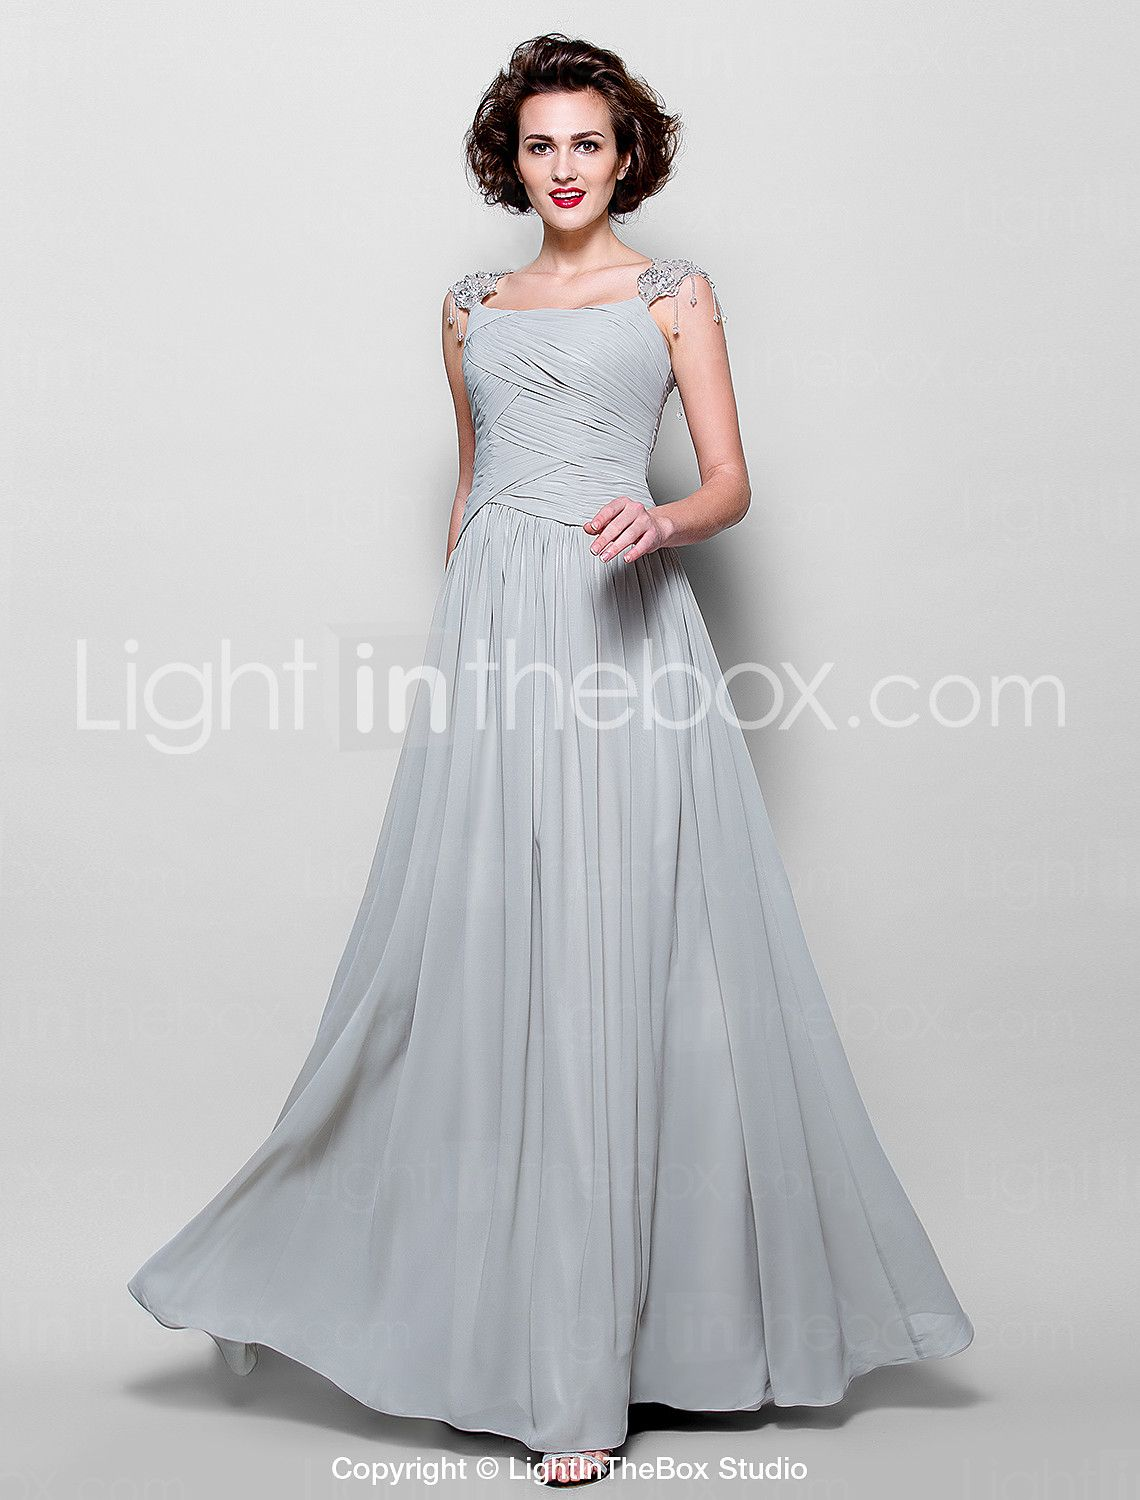 A-line Plus Sizes / Petite Mother of the Bride Dress - Silver Floor-length Sleeveless Chiffon / Lace 2015 – $139.99